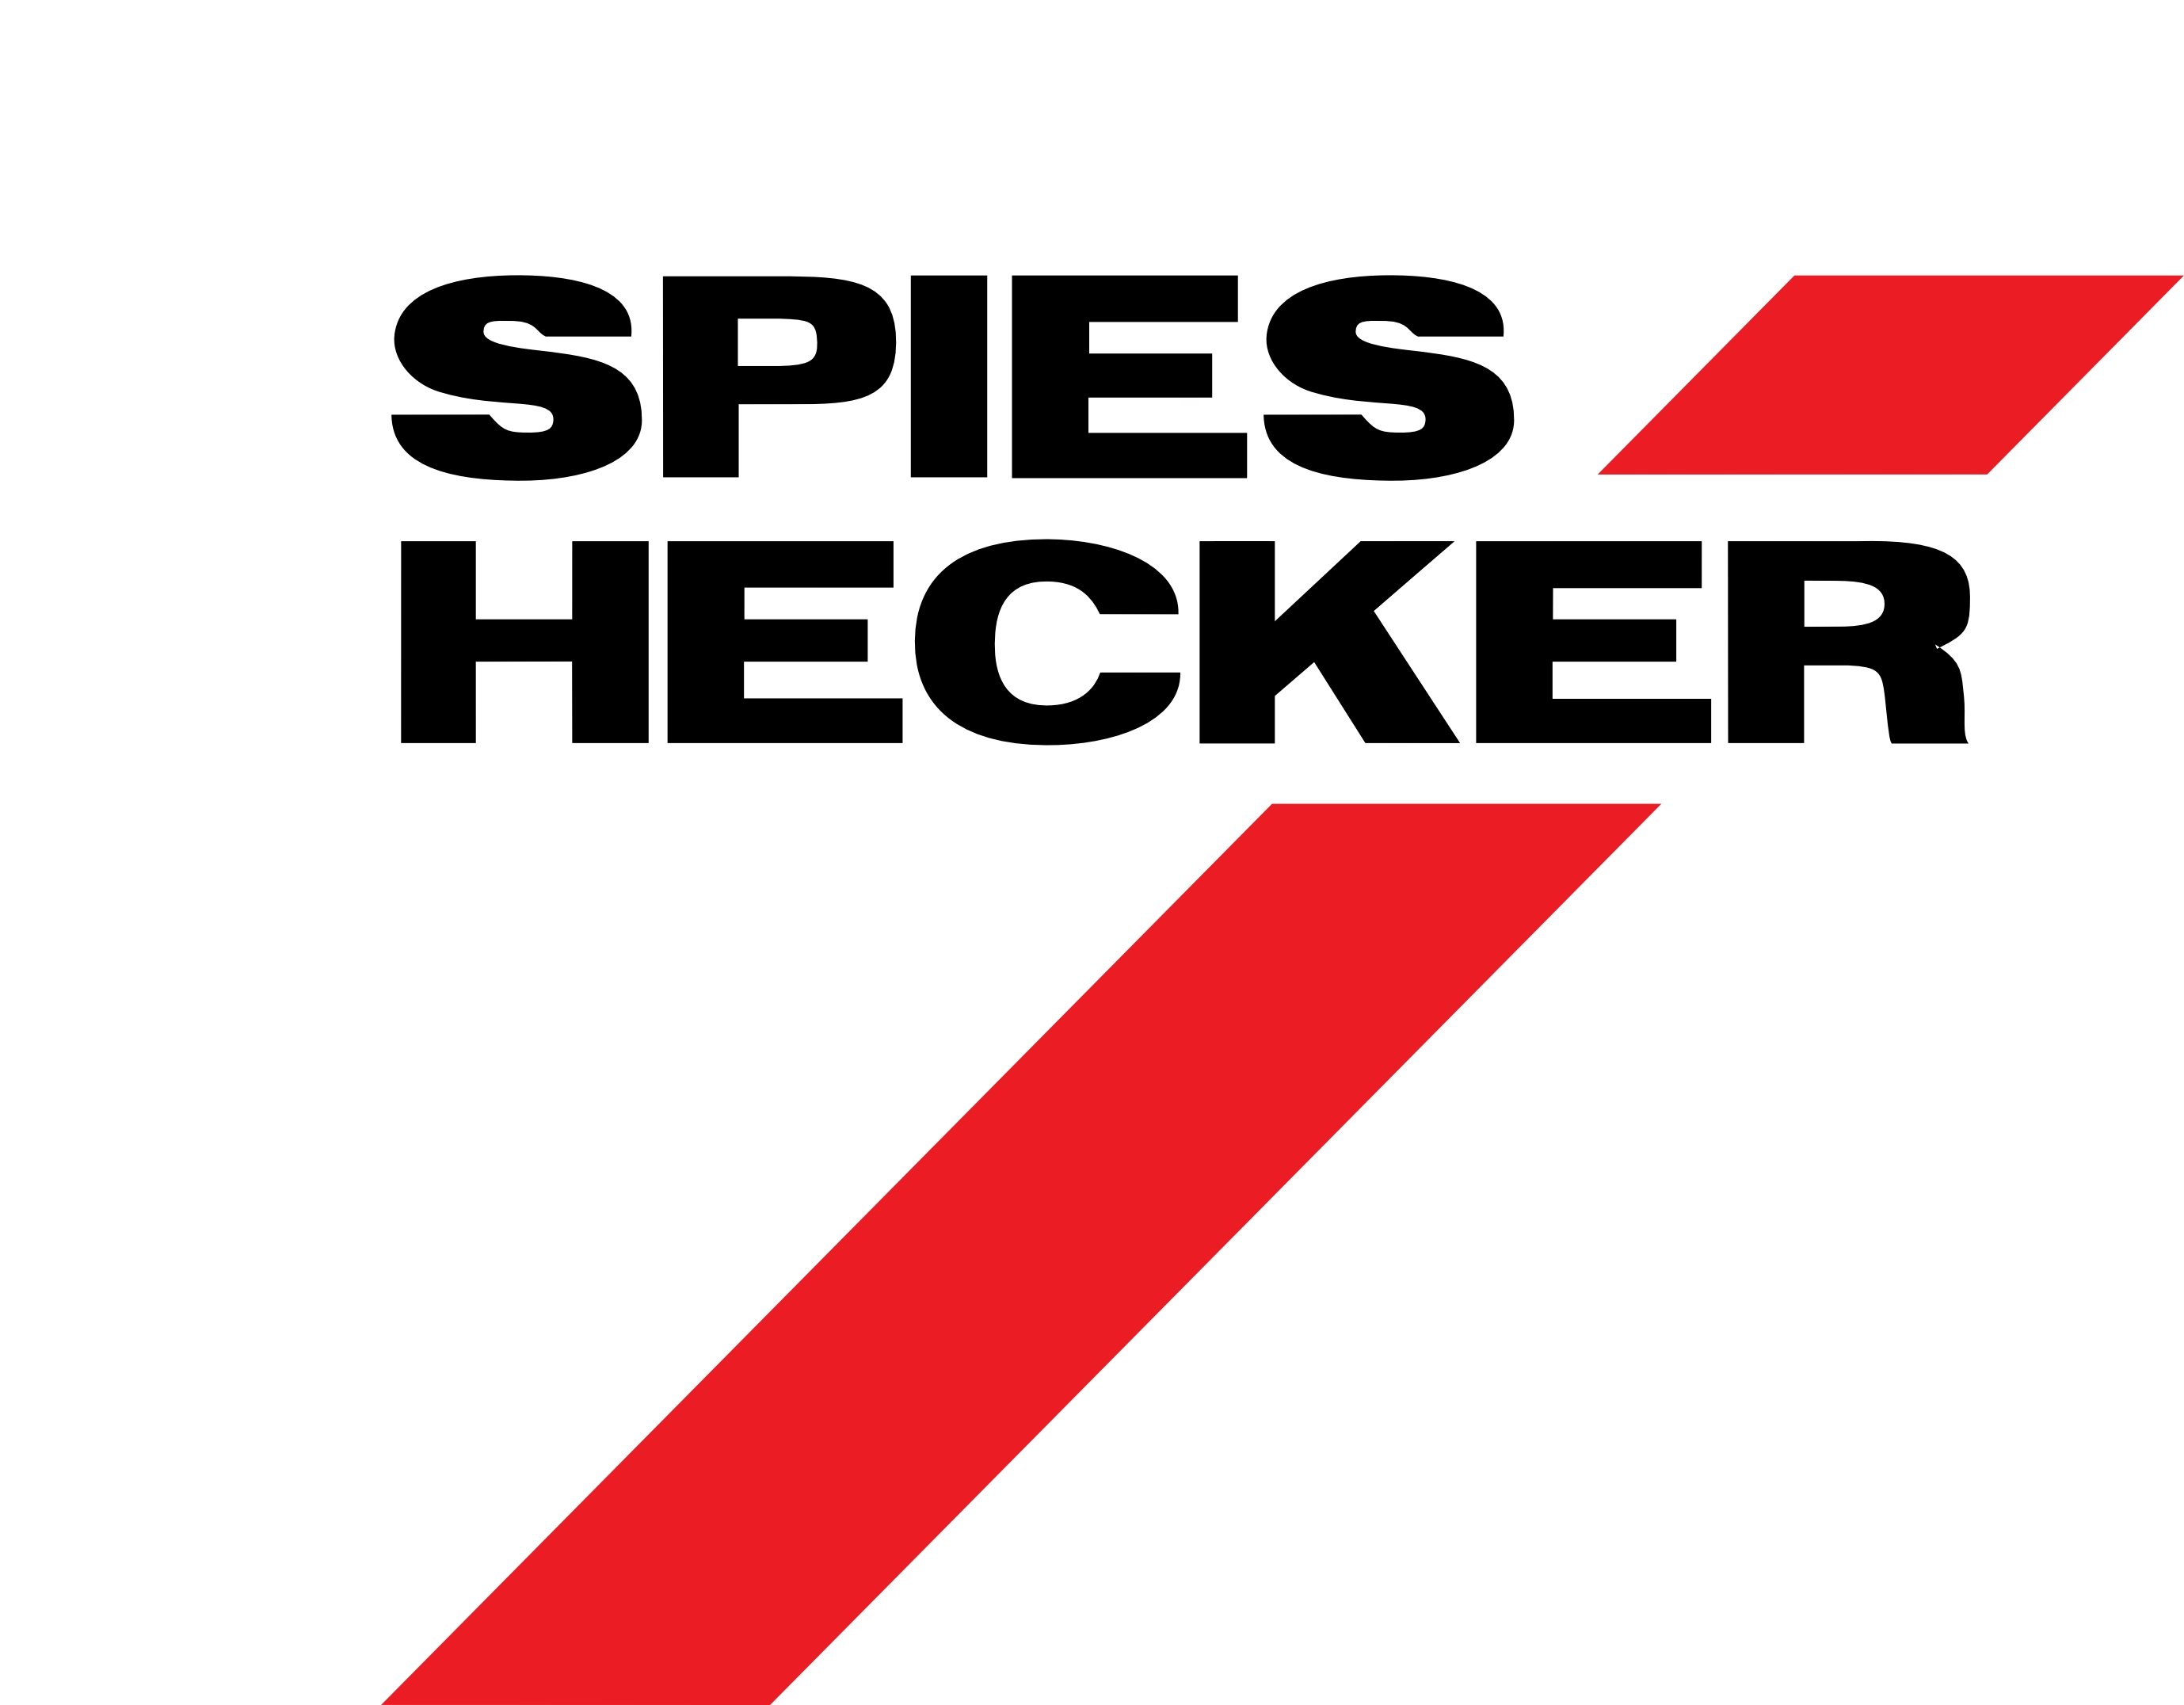 Spies-Hecker Car Paint